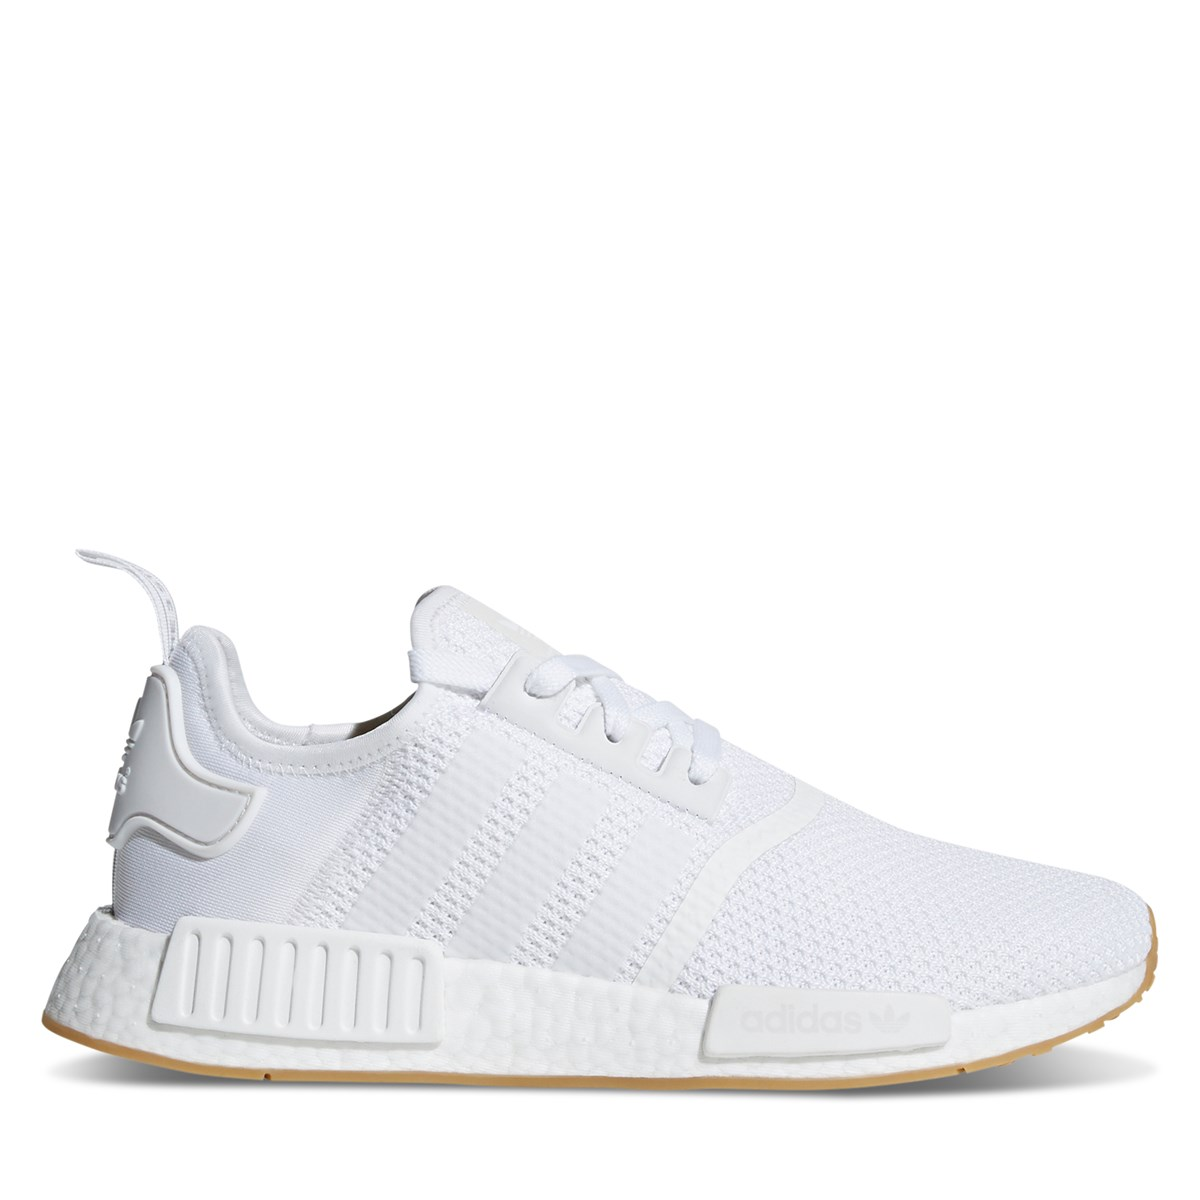 Men's NMD_R1 Sneakers in White